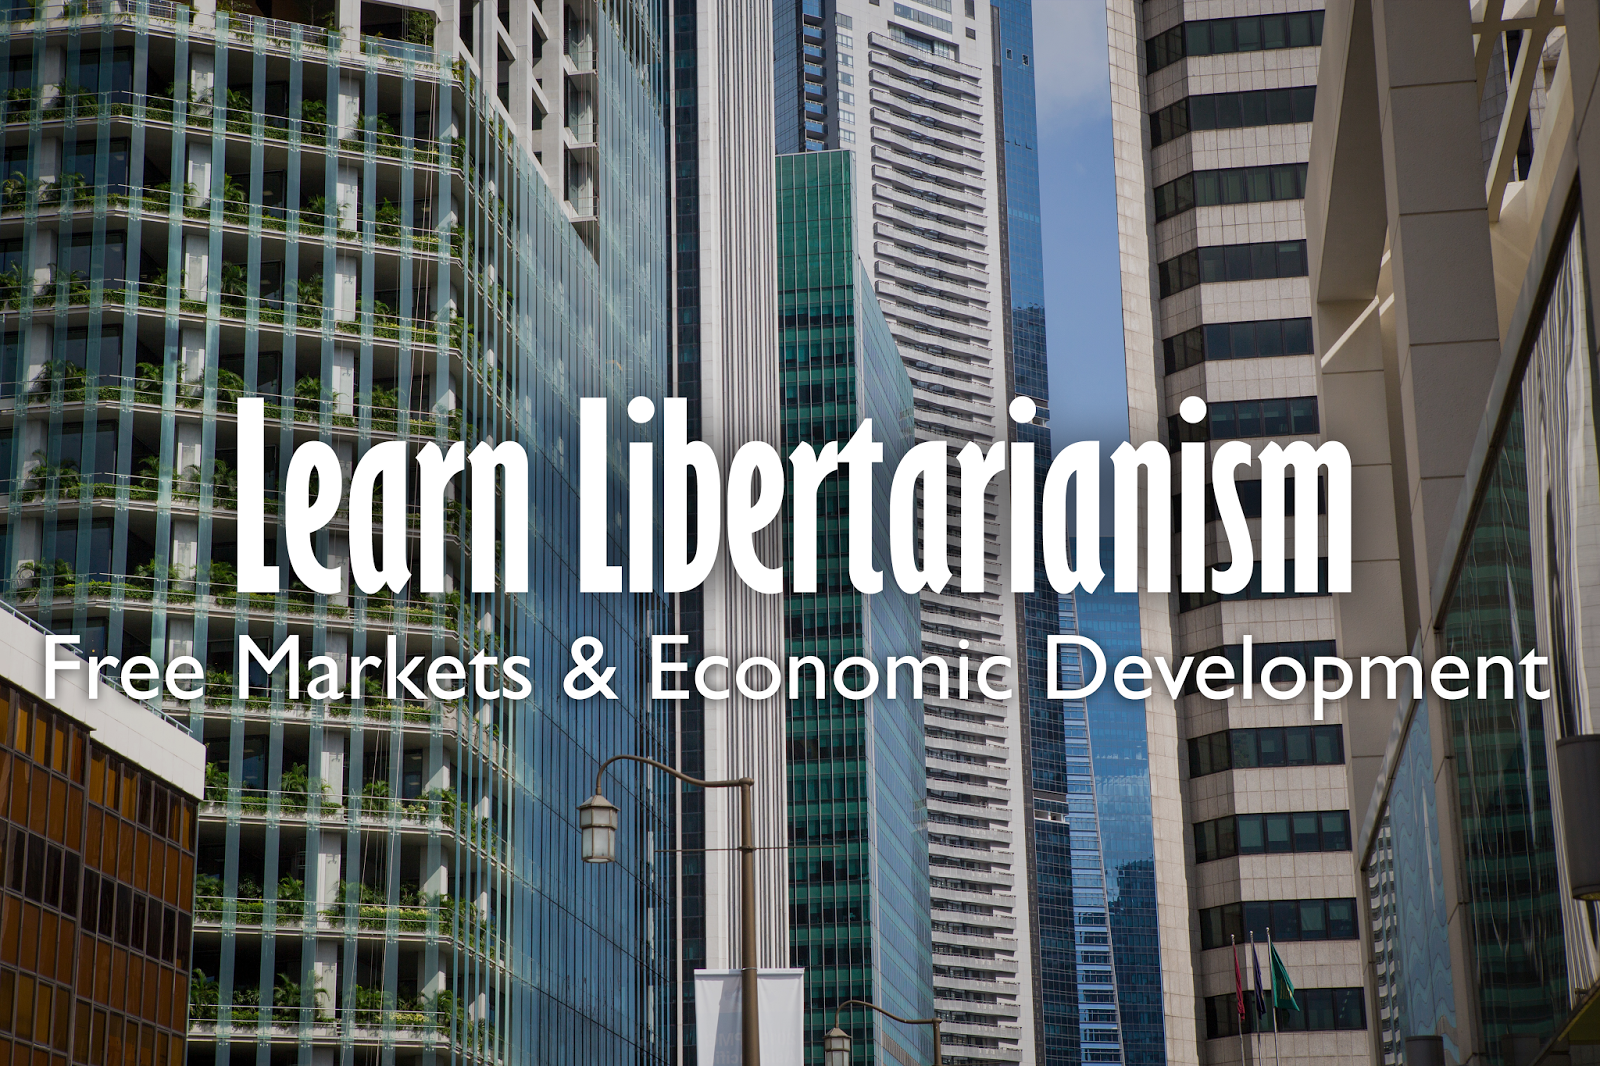 Libertarian Society Singapore | Free Markets & Economic Development